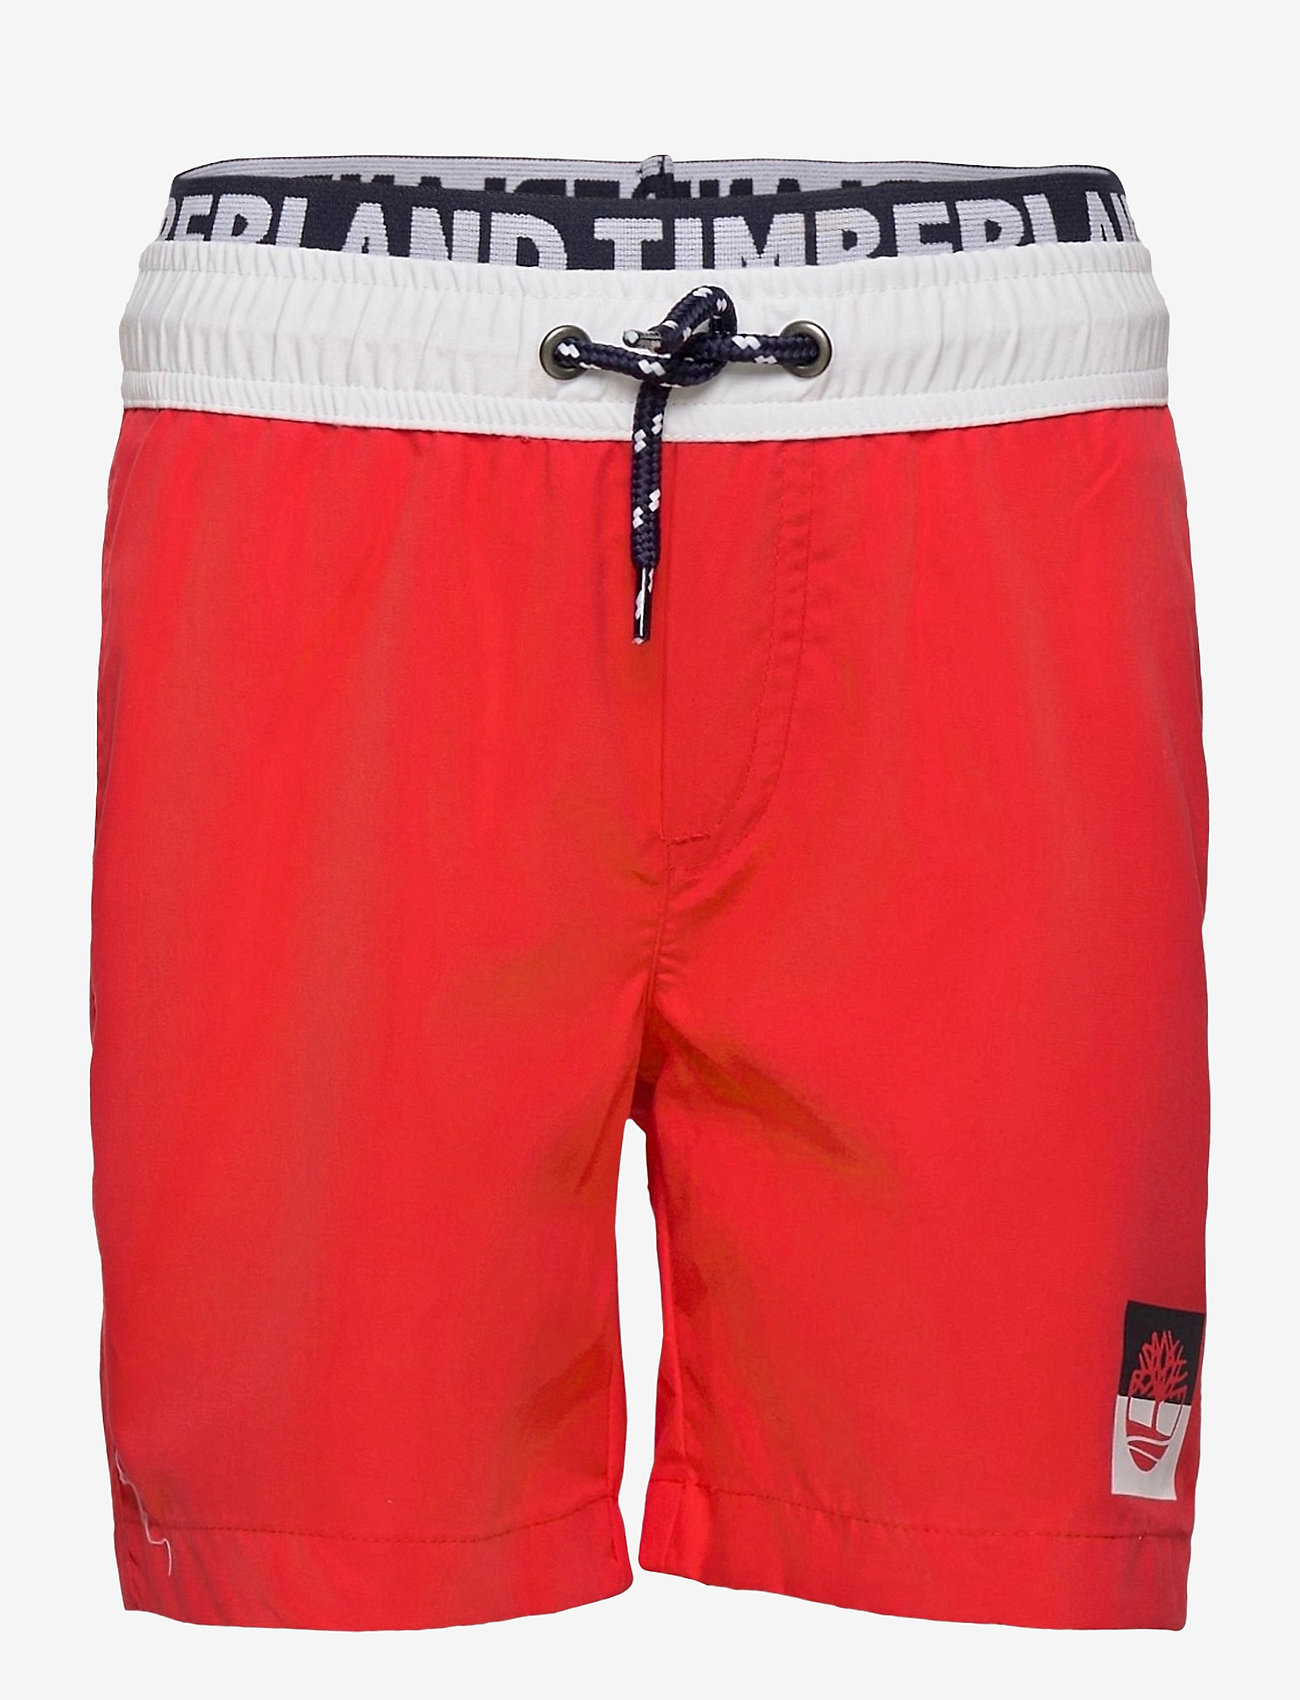 Timberland - SWIM SHORTS - swimsuits - orange - 0